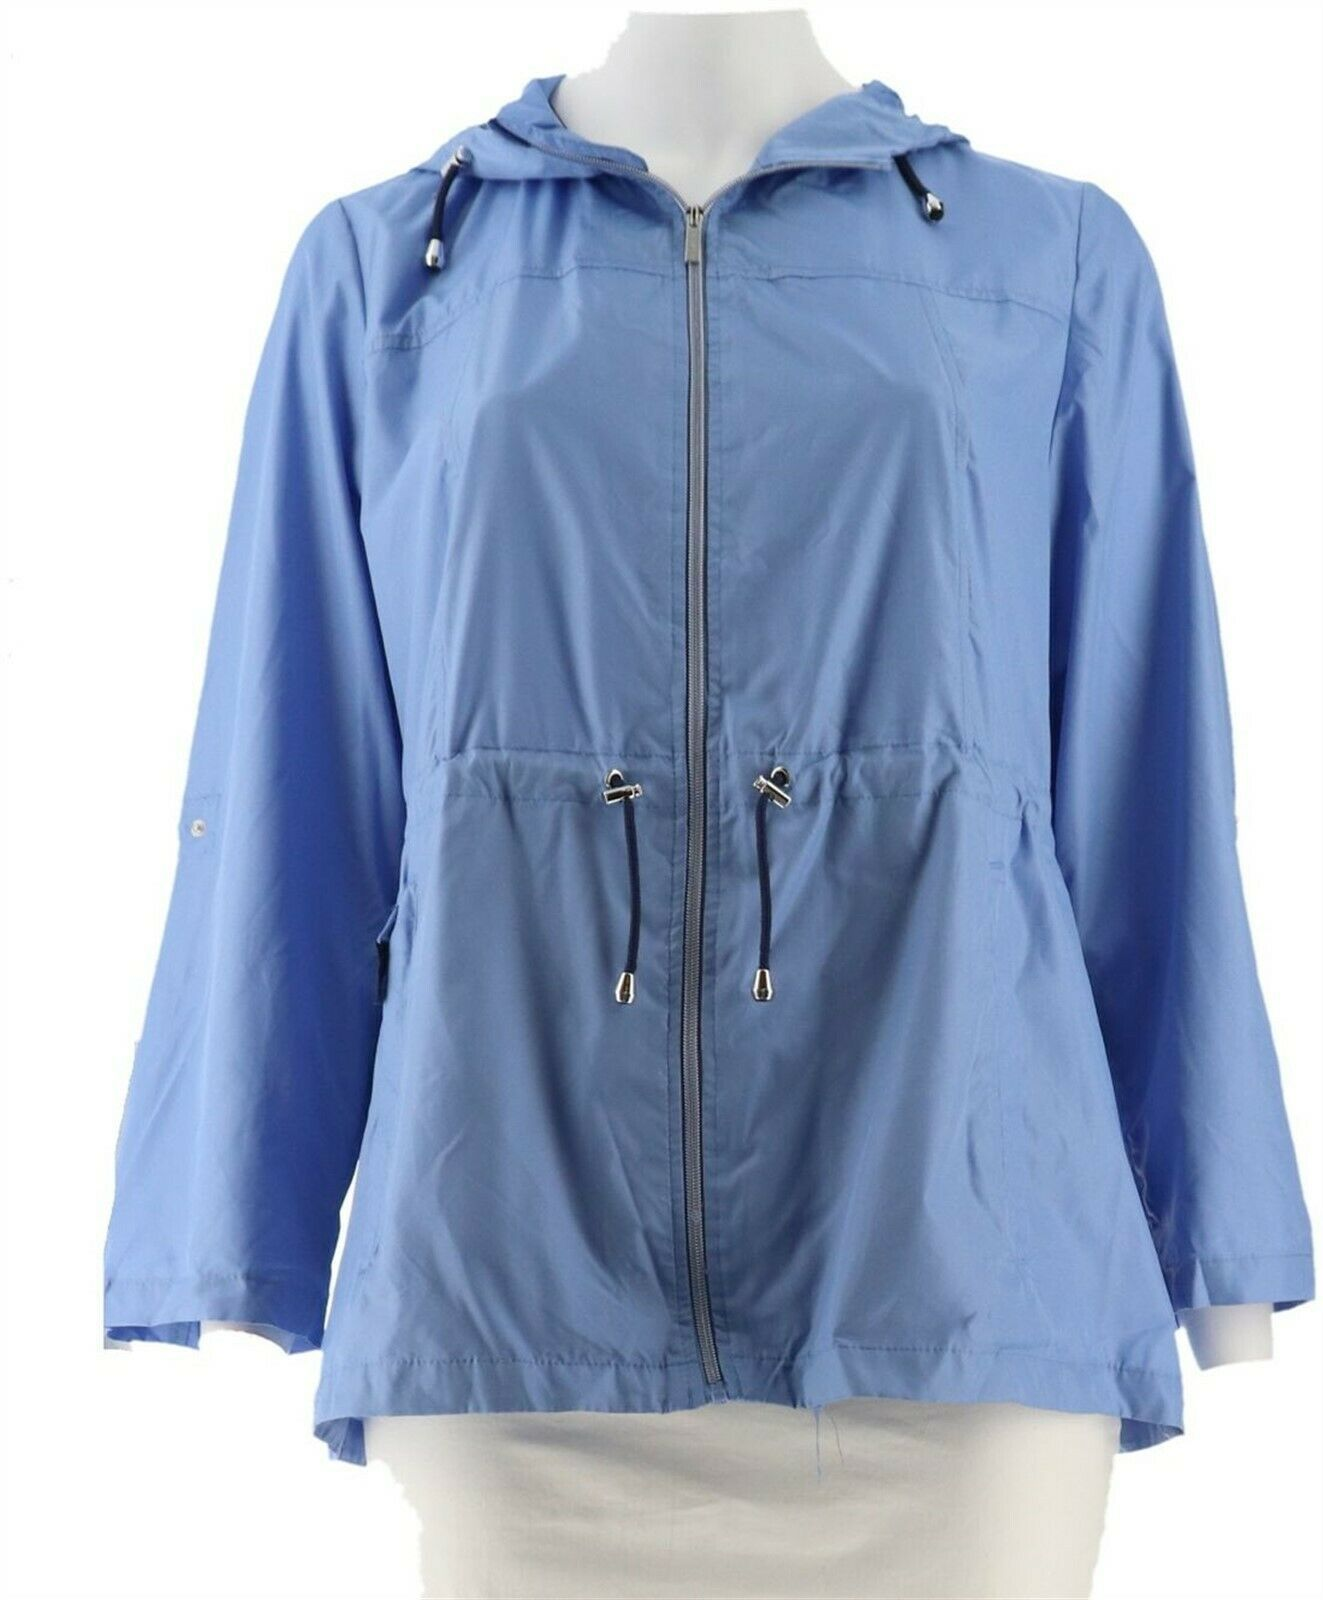 Primary image for Susan Graver Packable Anorak Jacket Hood Periwinkle Blue 1X NEW A287942